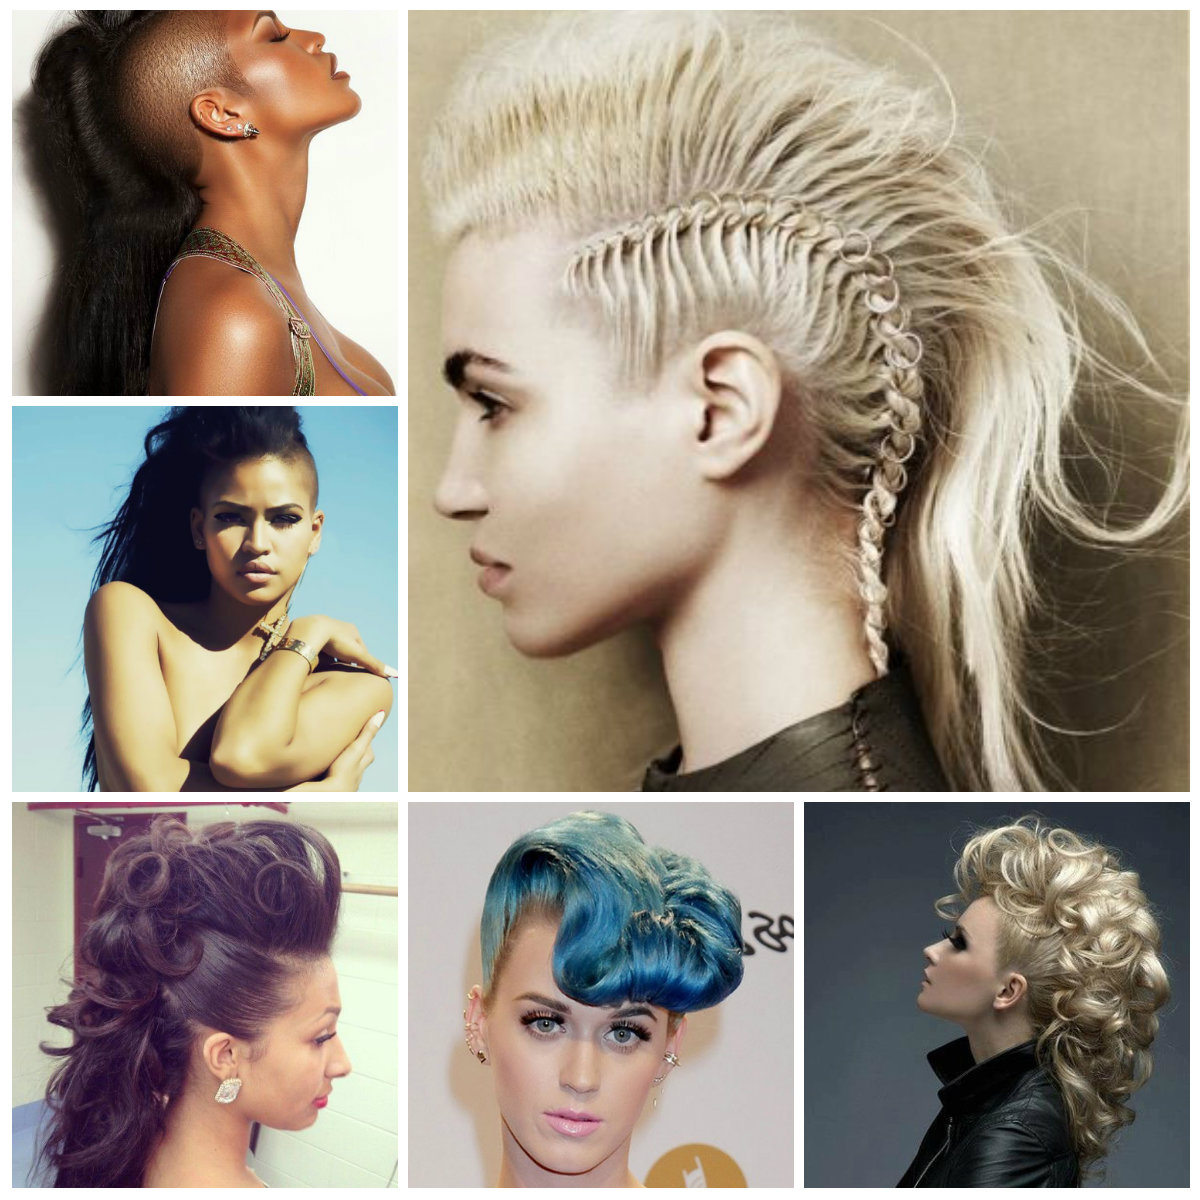 Best And Newest Side Shaved Long Hair Mohawk Hairstyles In Mohawk Hairstyle For Long Hair – Hairstyleto (View 11 of 20)